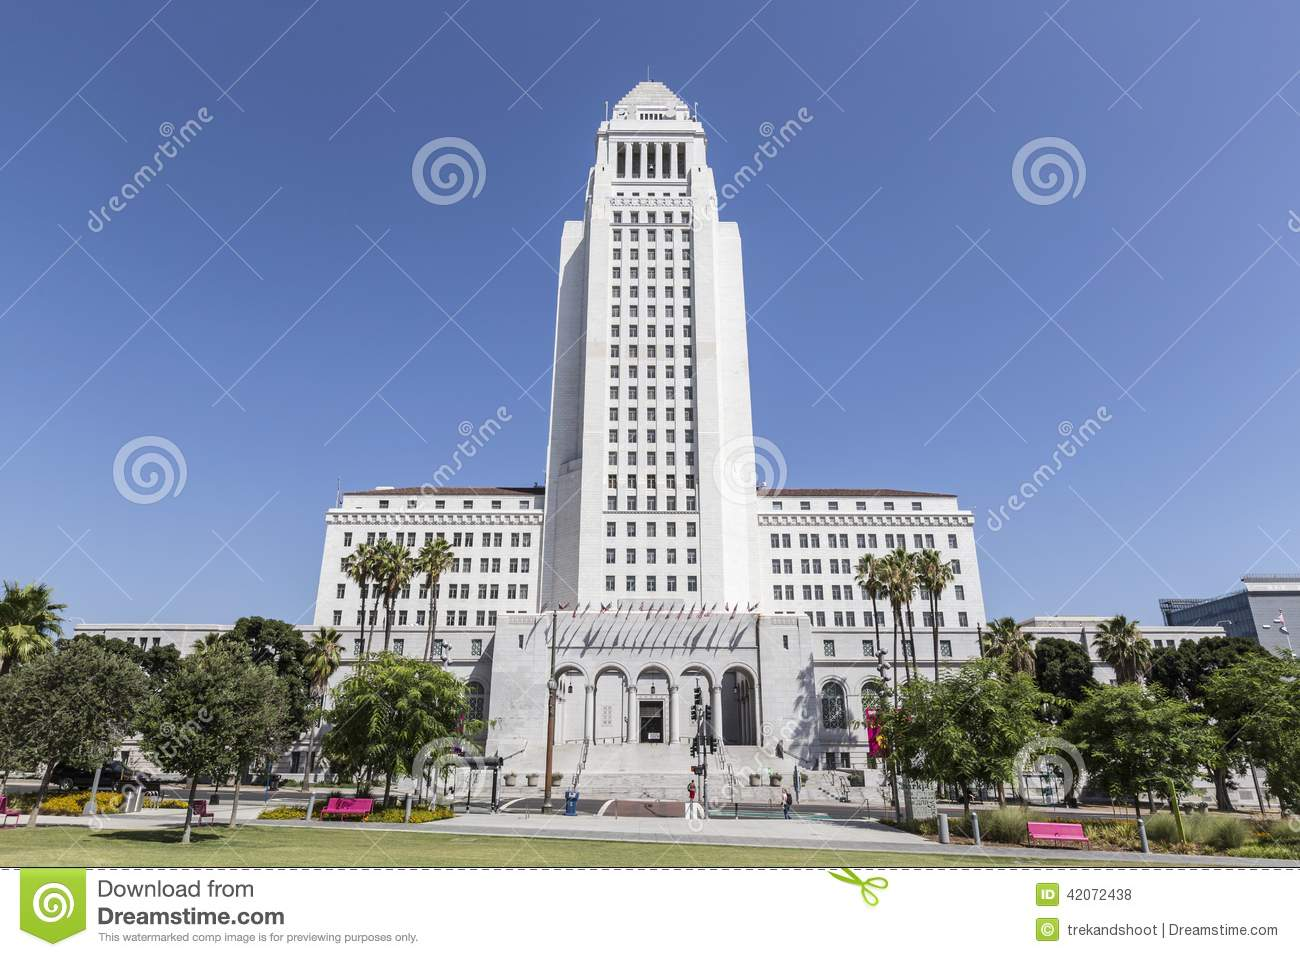 554646510329883331 besides Housse De Couette 896754850468 moreover Los Angeles City Hall further Half Sided Fish Mount Barracuda moreover The Golden Gate Bridge At Night. on california deco